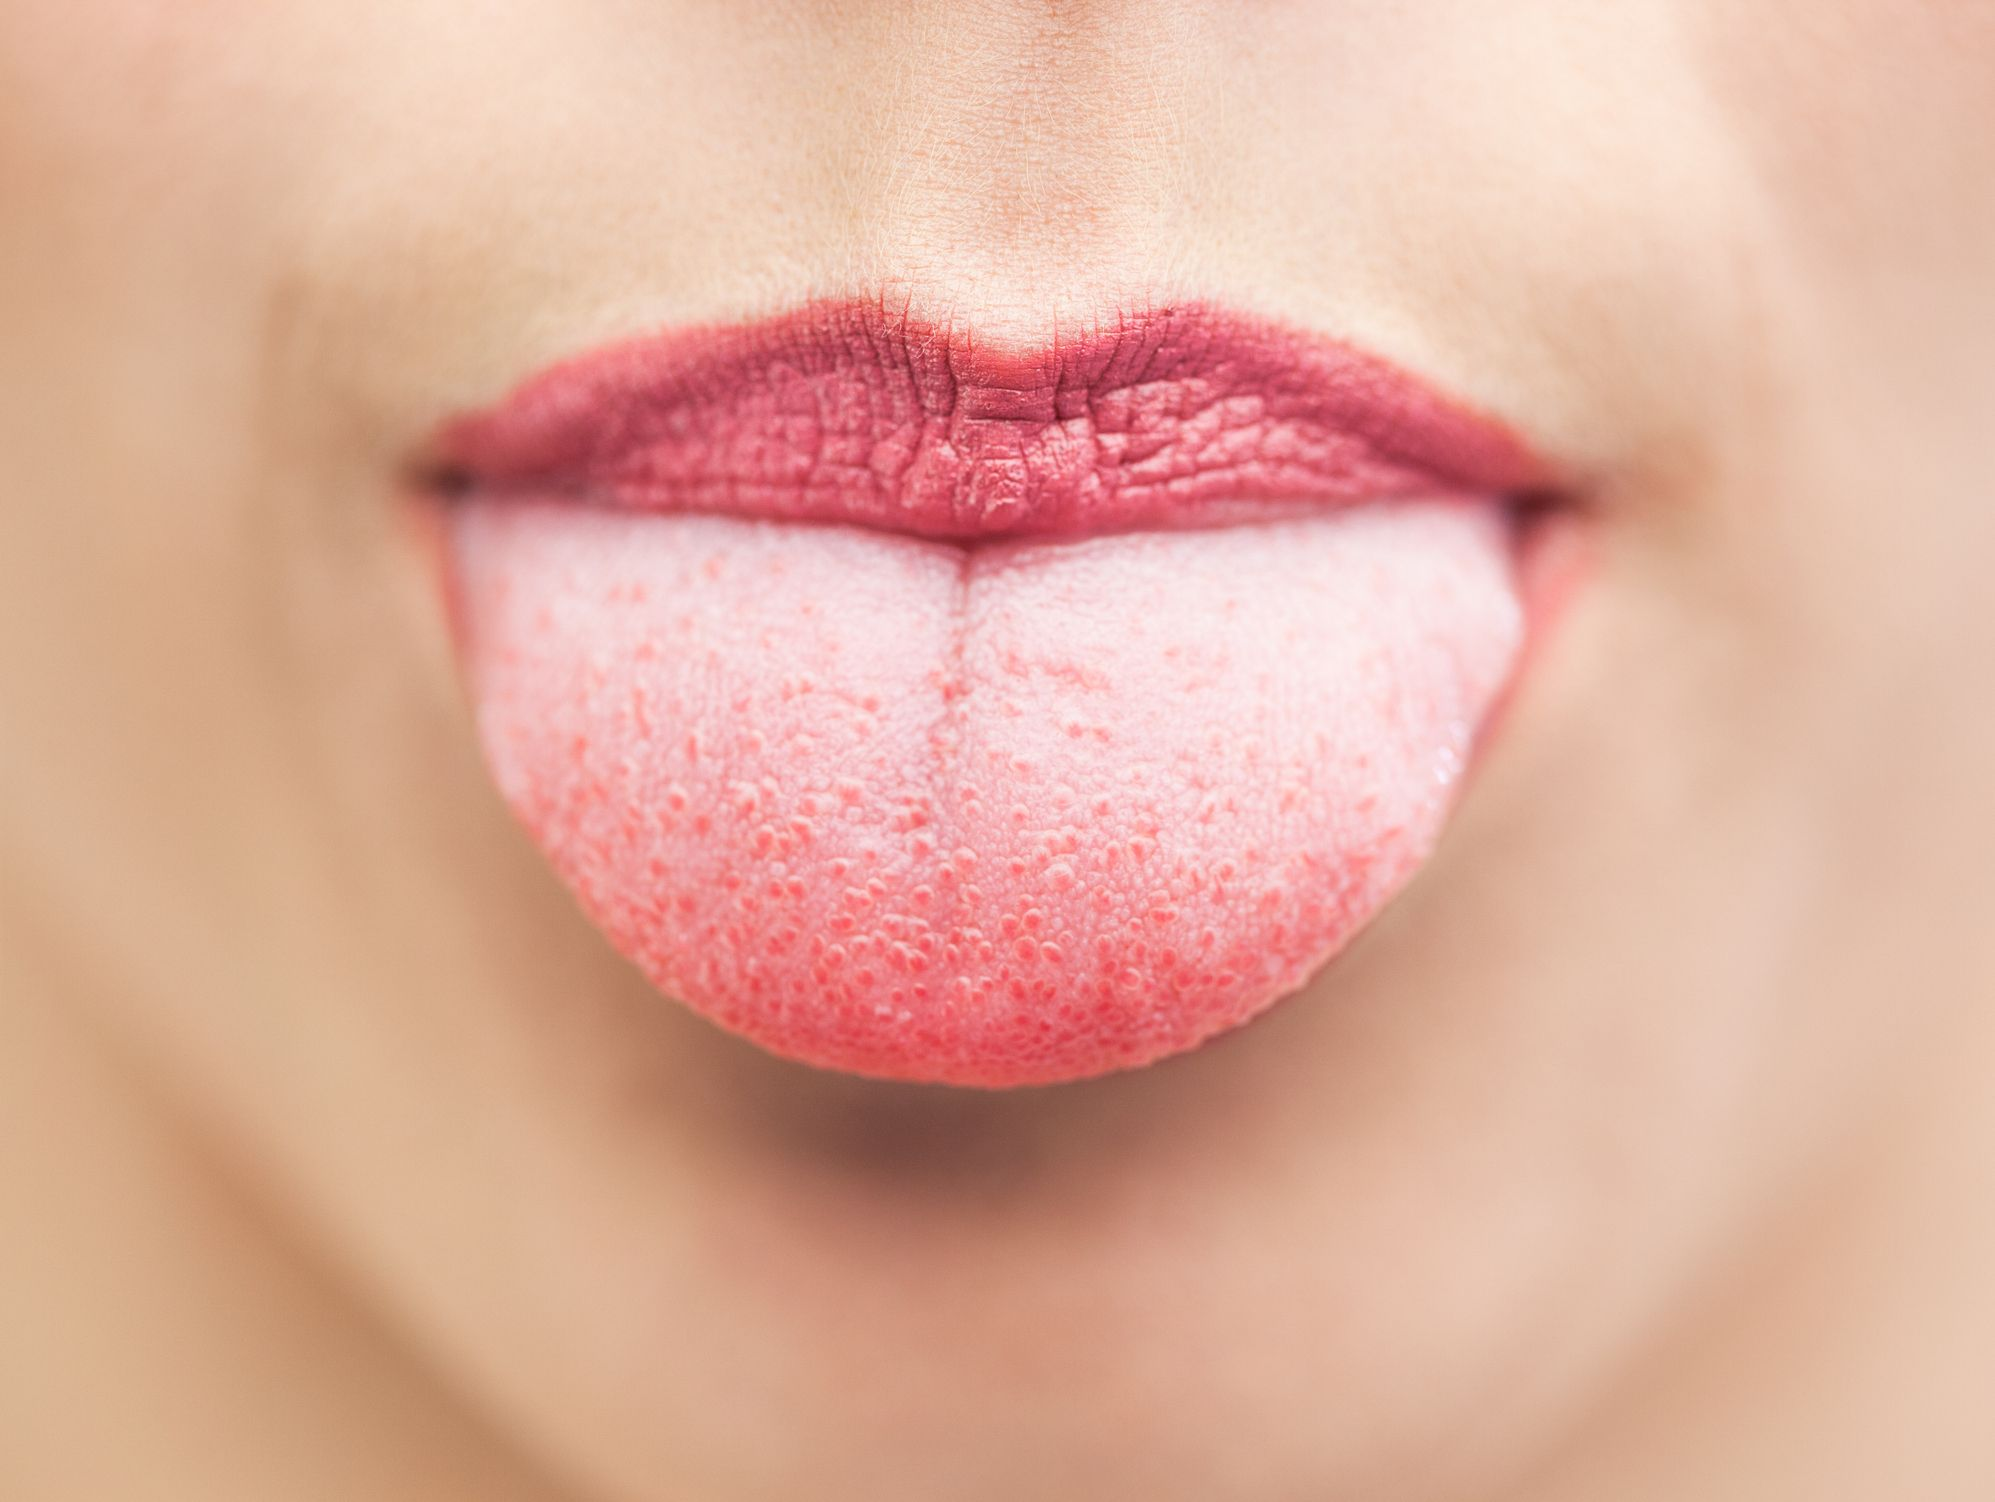 tongue papillae treatment